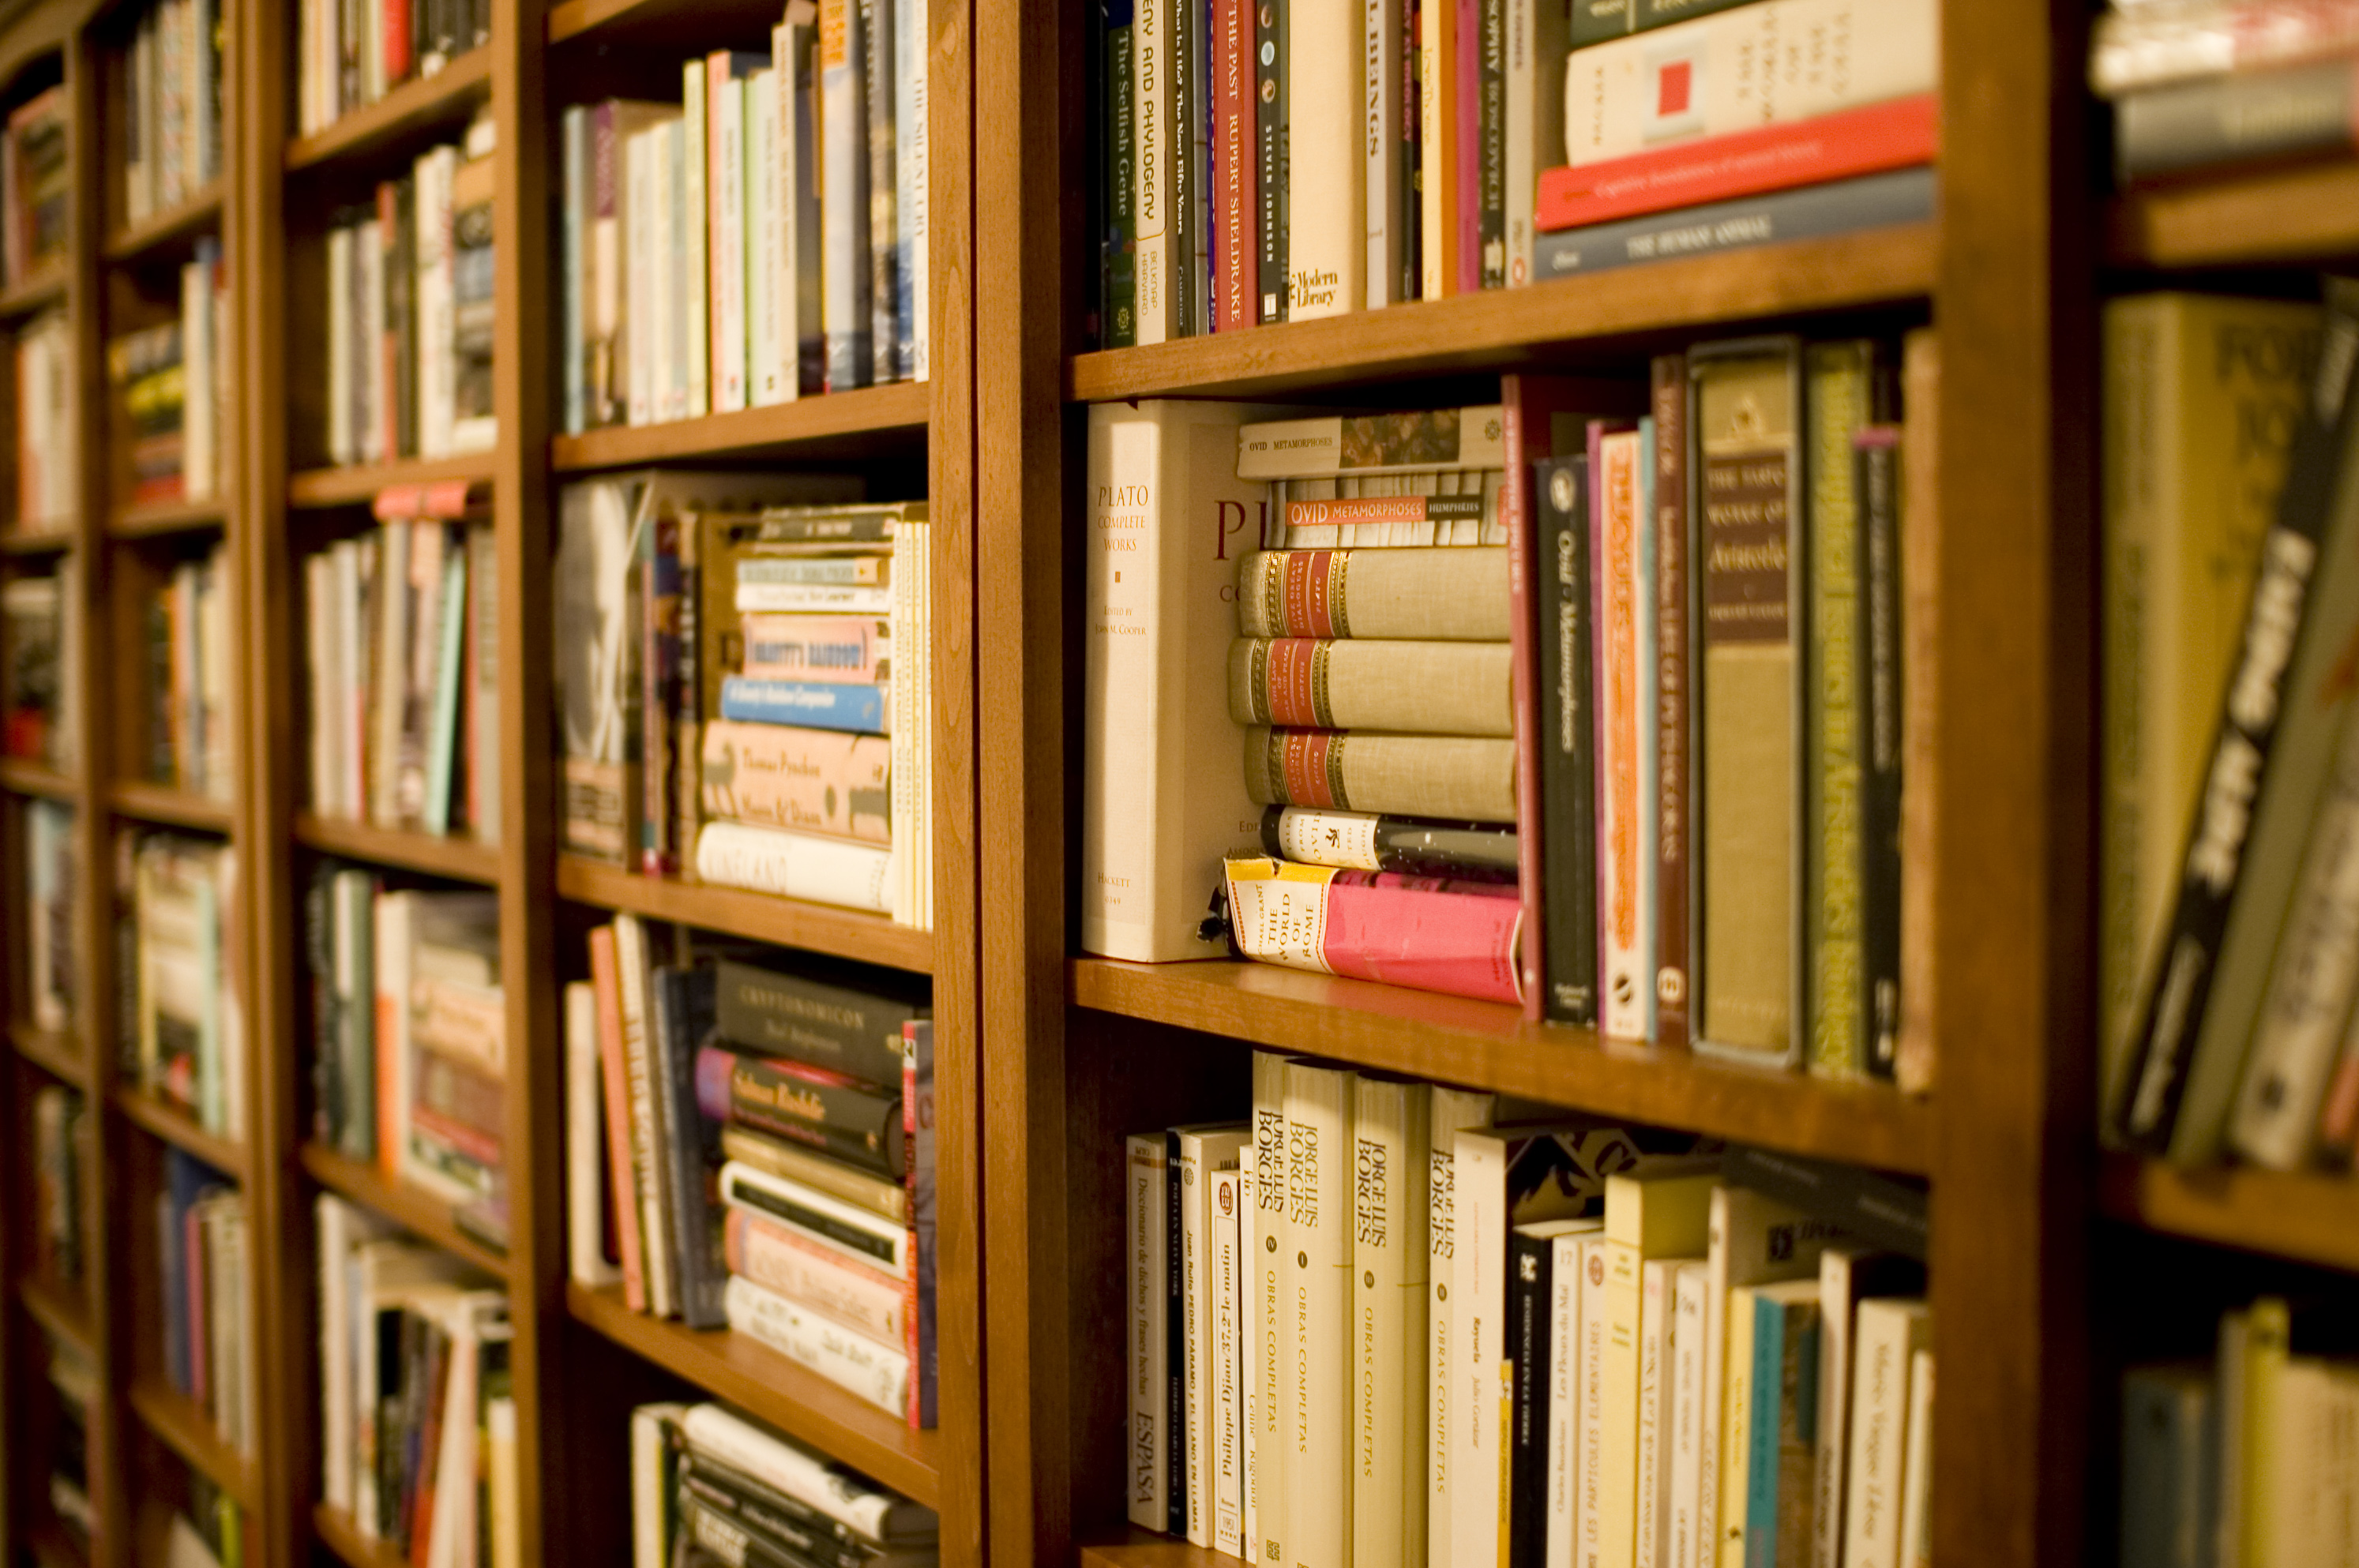 File:Bookshelf.jpg : picture-of-bookshelf - designwebi.com